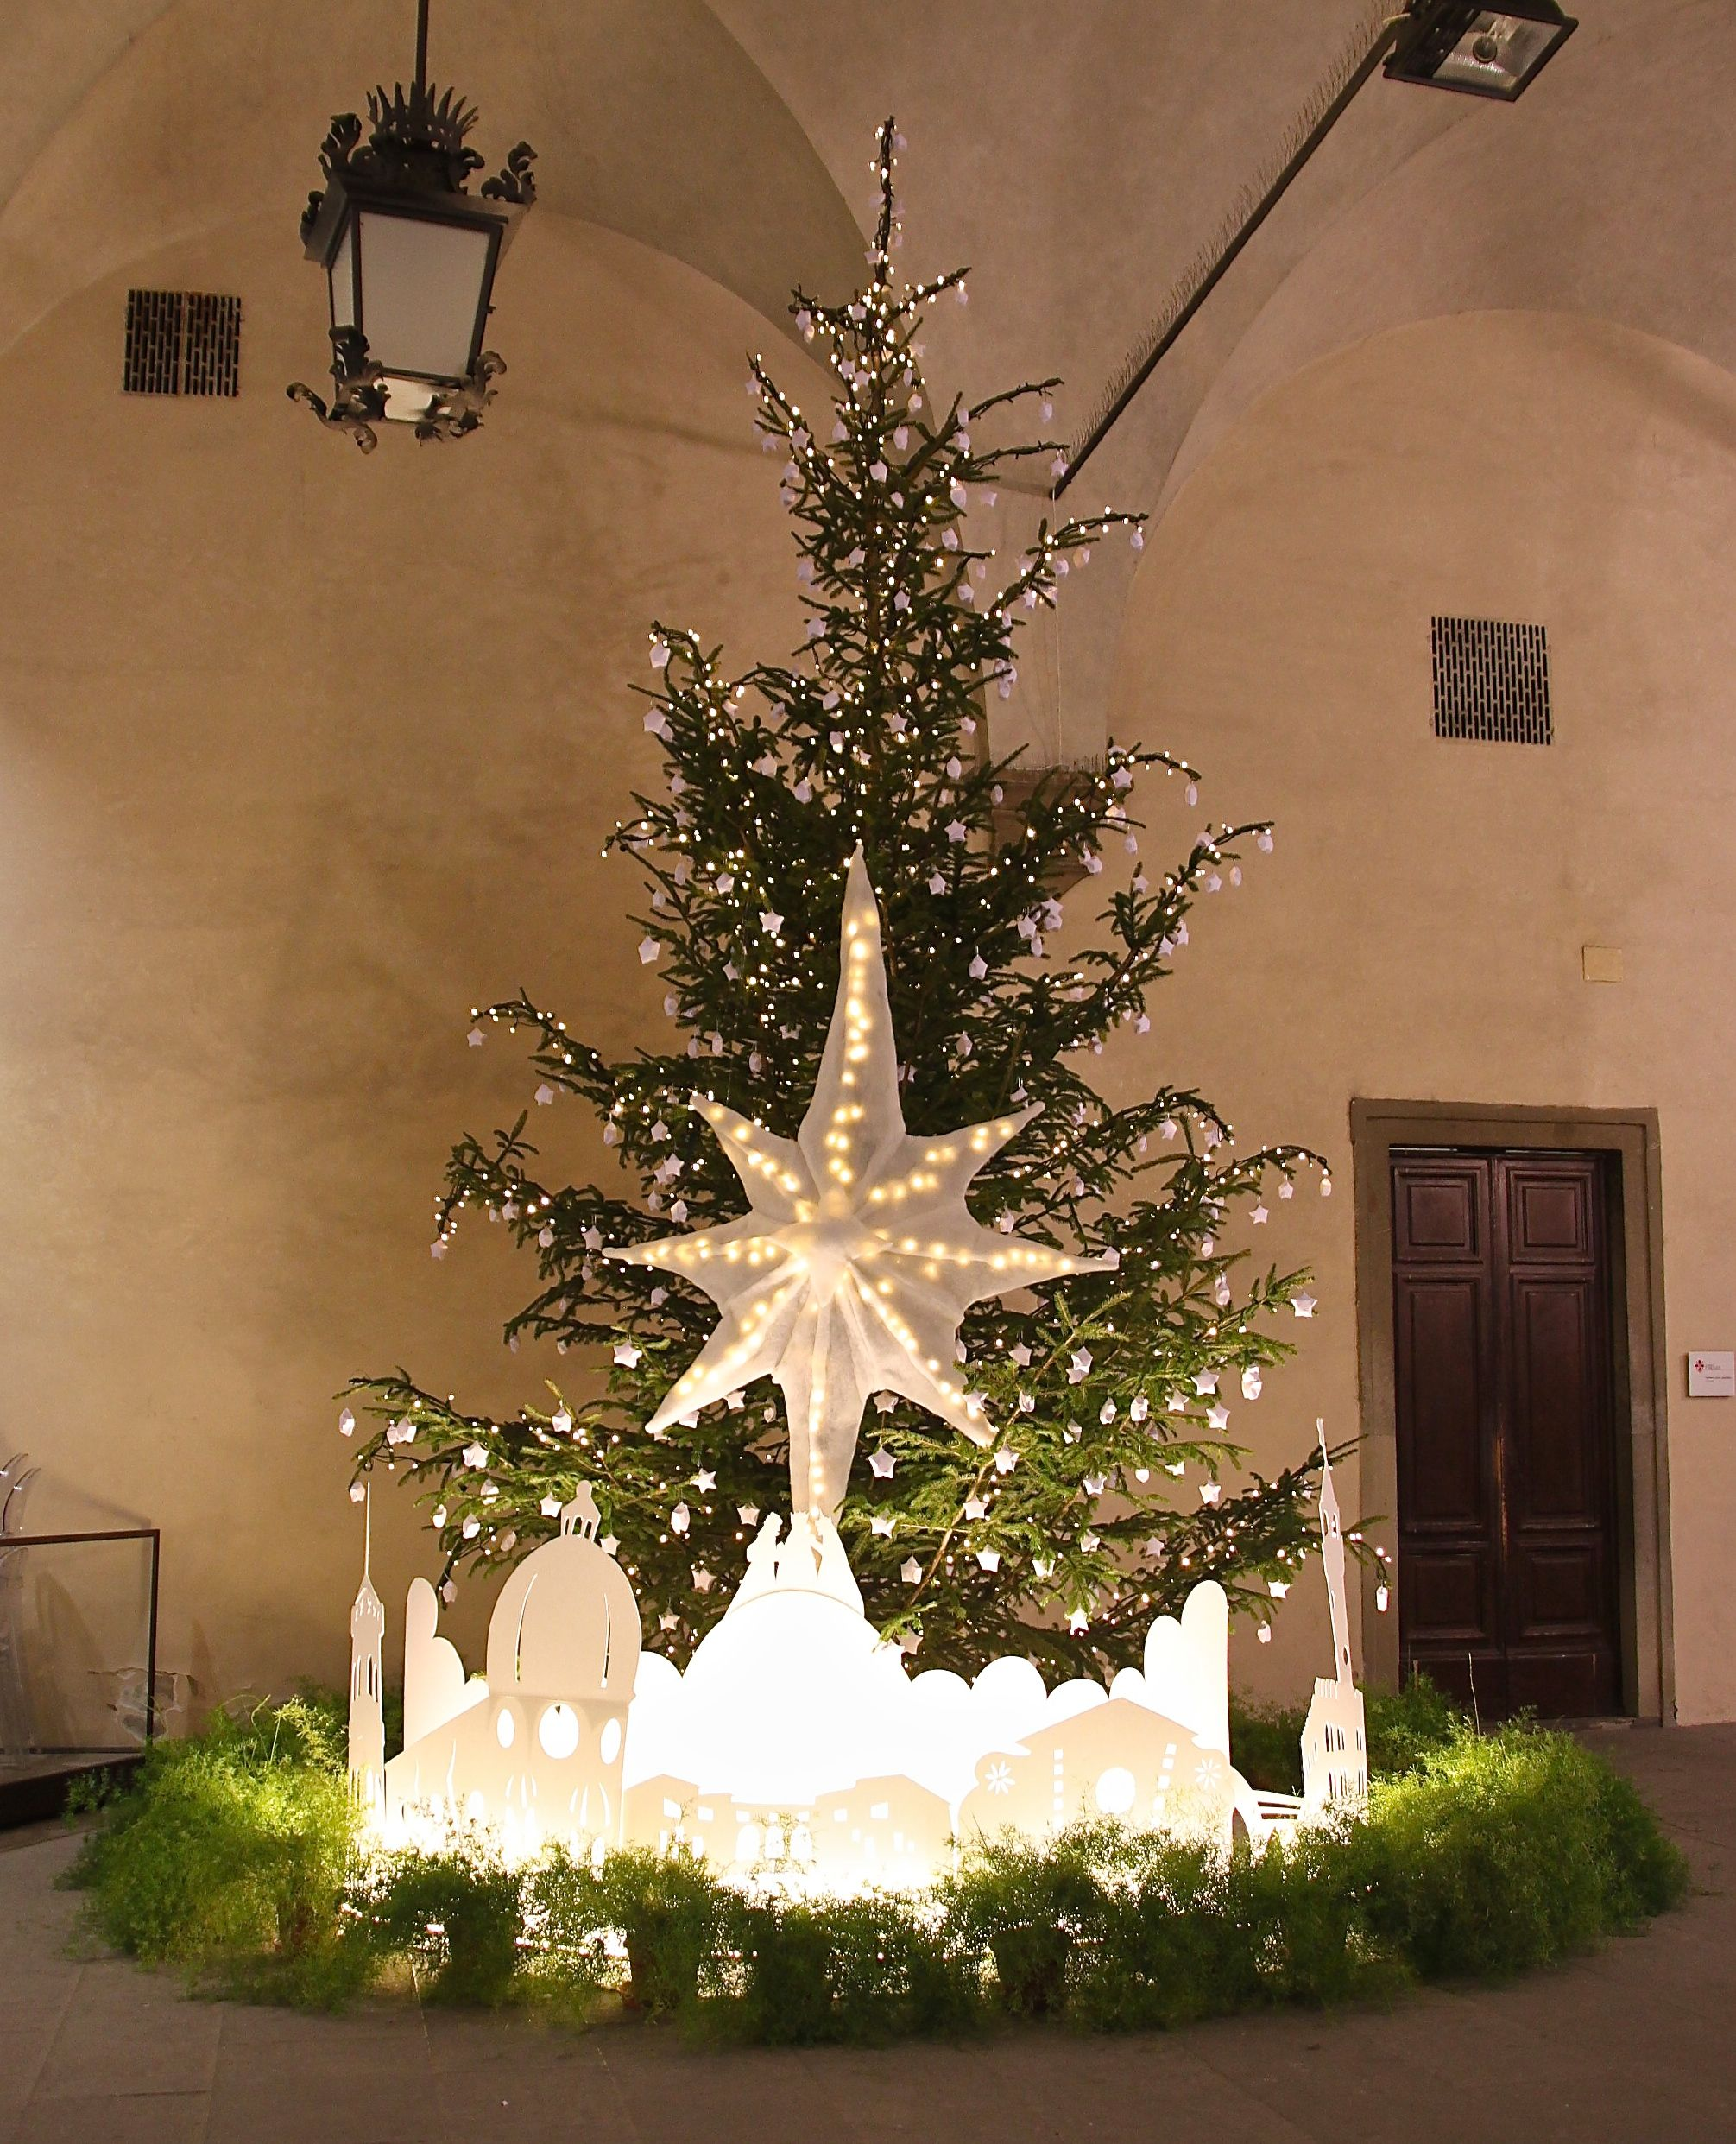 christmas tree decorations - How Do You Say Merry Christmas In Italian